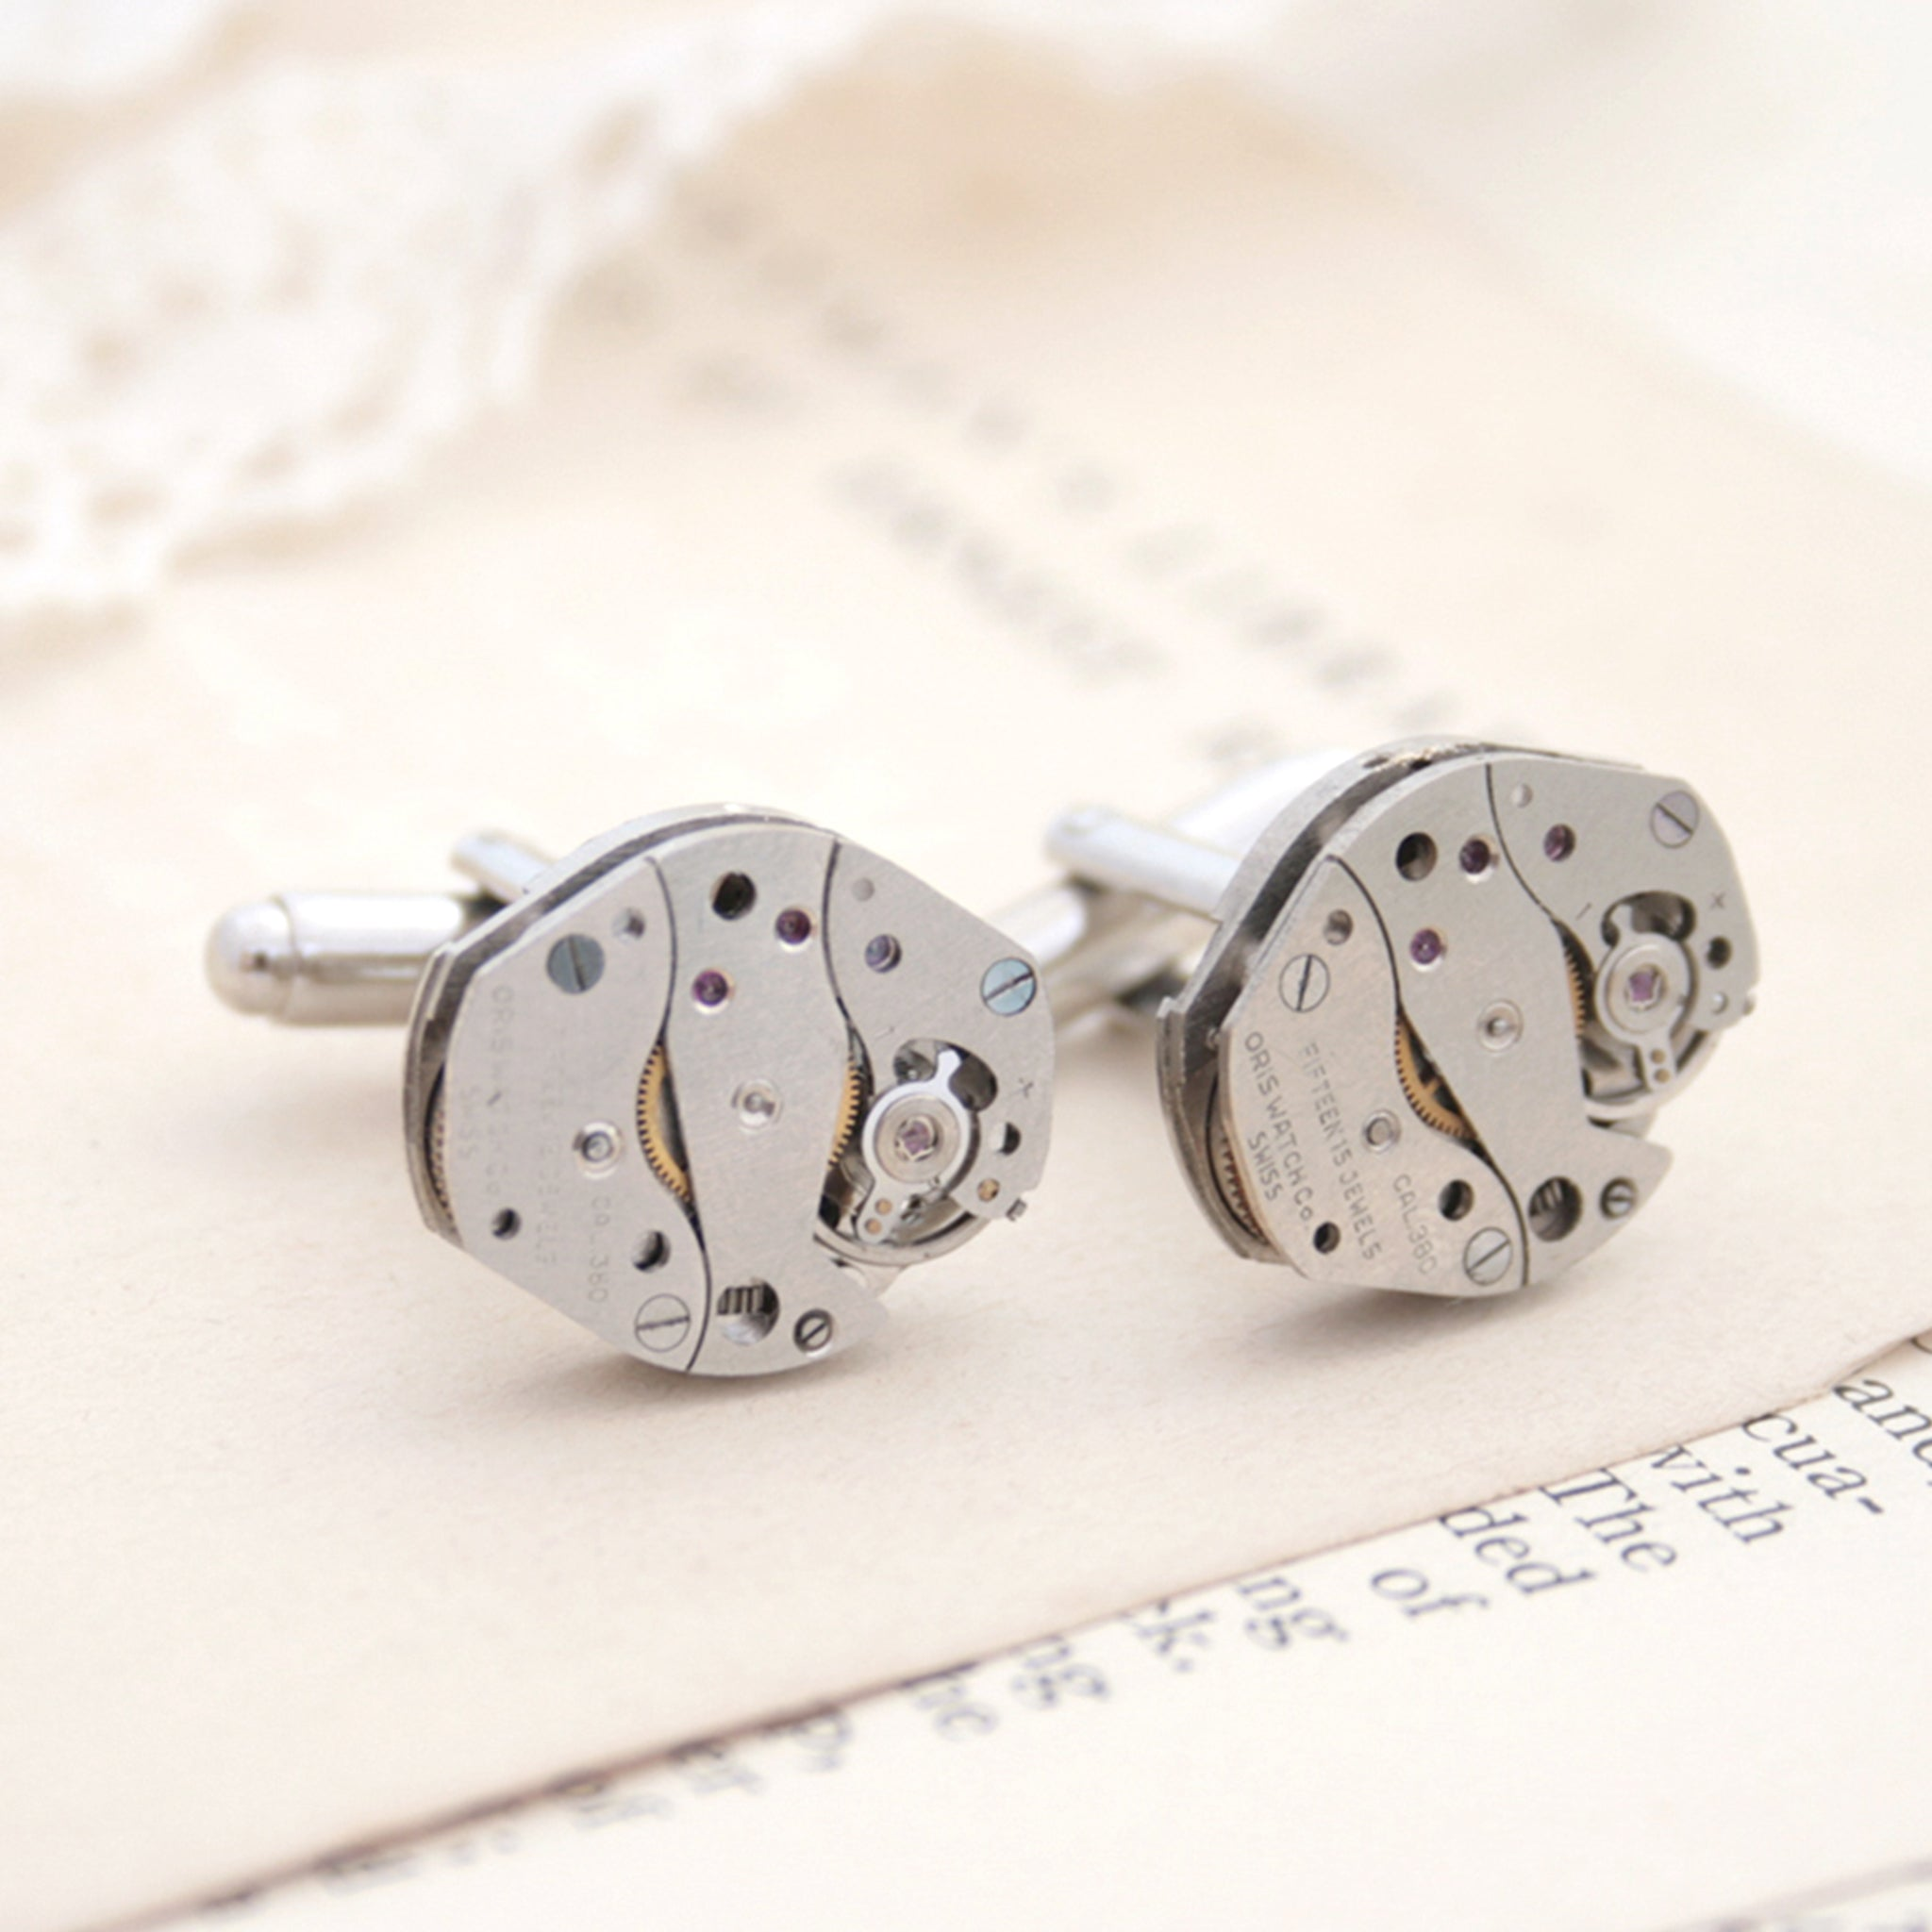 cool watch cufflinks for men featuring antique movements